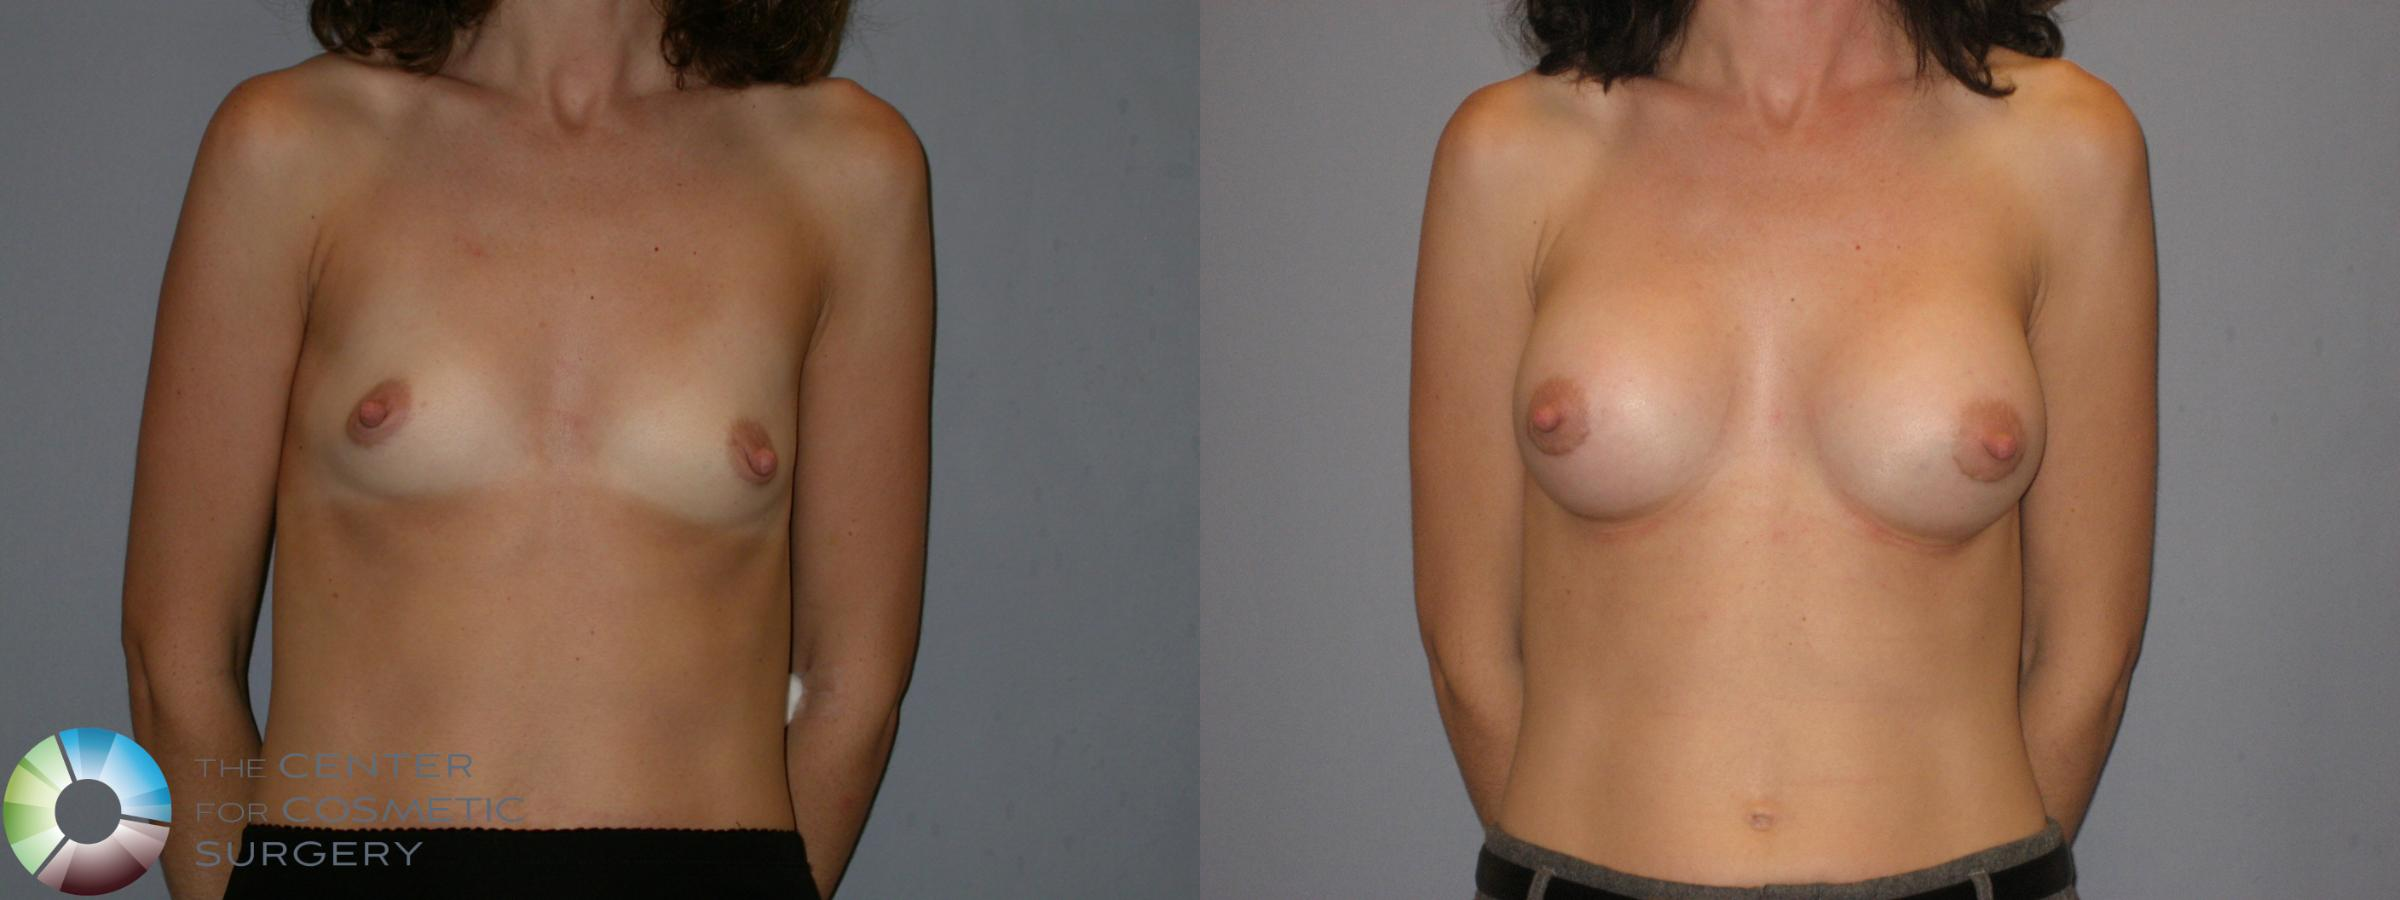 Breast Augmentation Case 113 Before & After View #1 | Golden, CO | The Center for Cosmetic Surgery